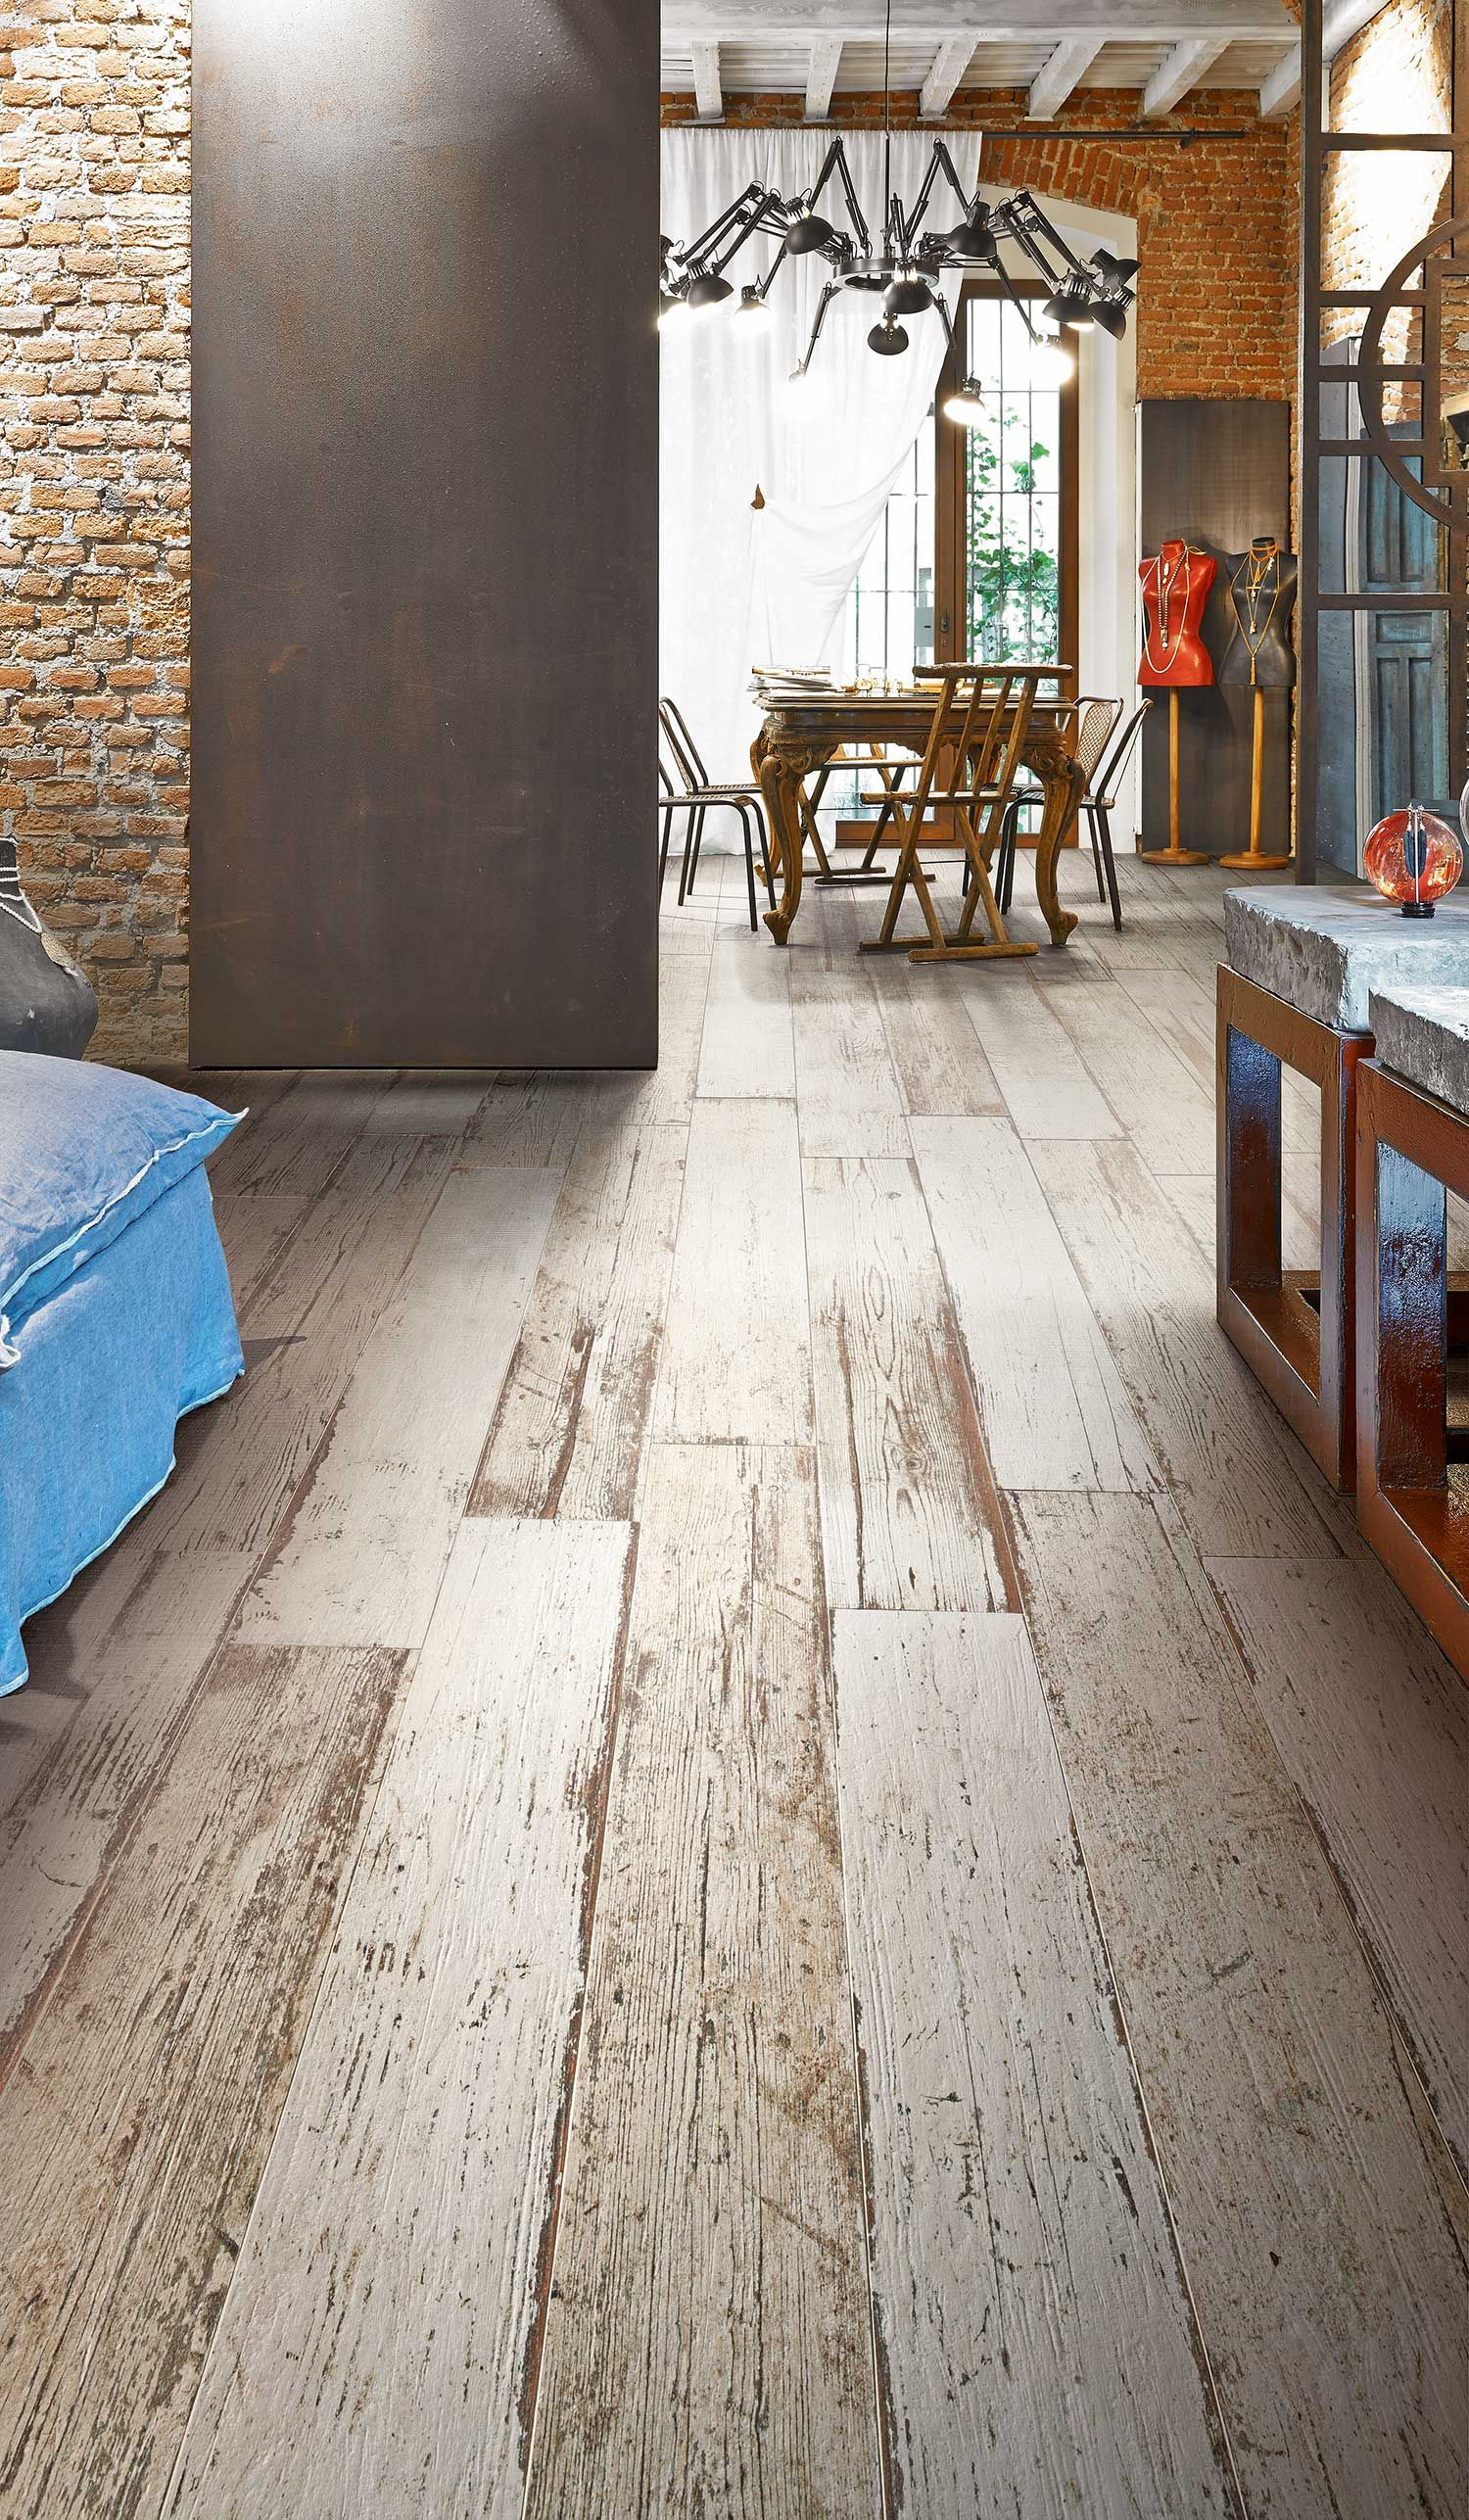 Blendart italian floor wall tile click on the image to visit give your floor a touch of wood with blendart tiles buy floor tiles with unmatched quality and authentic at uk tile shop for more info visit our website dailygadgetfo Choice Image